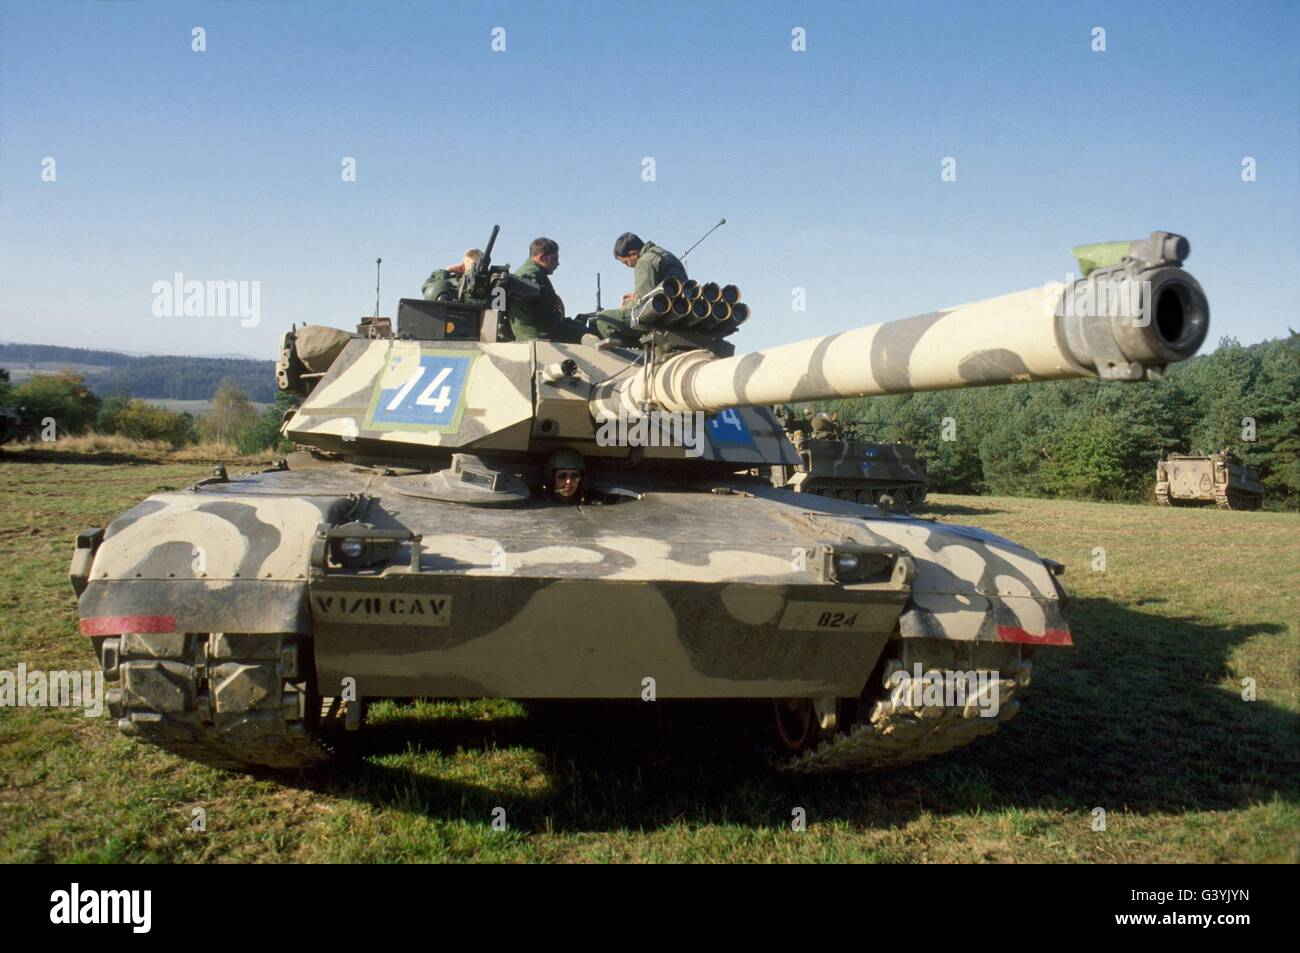 http://c7.alamy.com/comp/G3YJYN/us-army-tanks-m-1-abram-during-nato-exercises-in-germany-G3YJYN.jpg